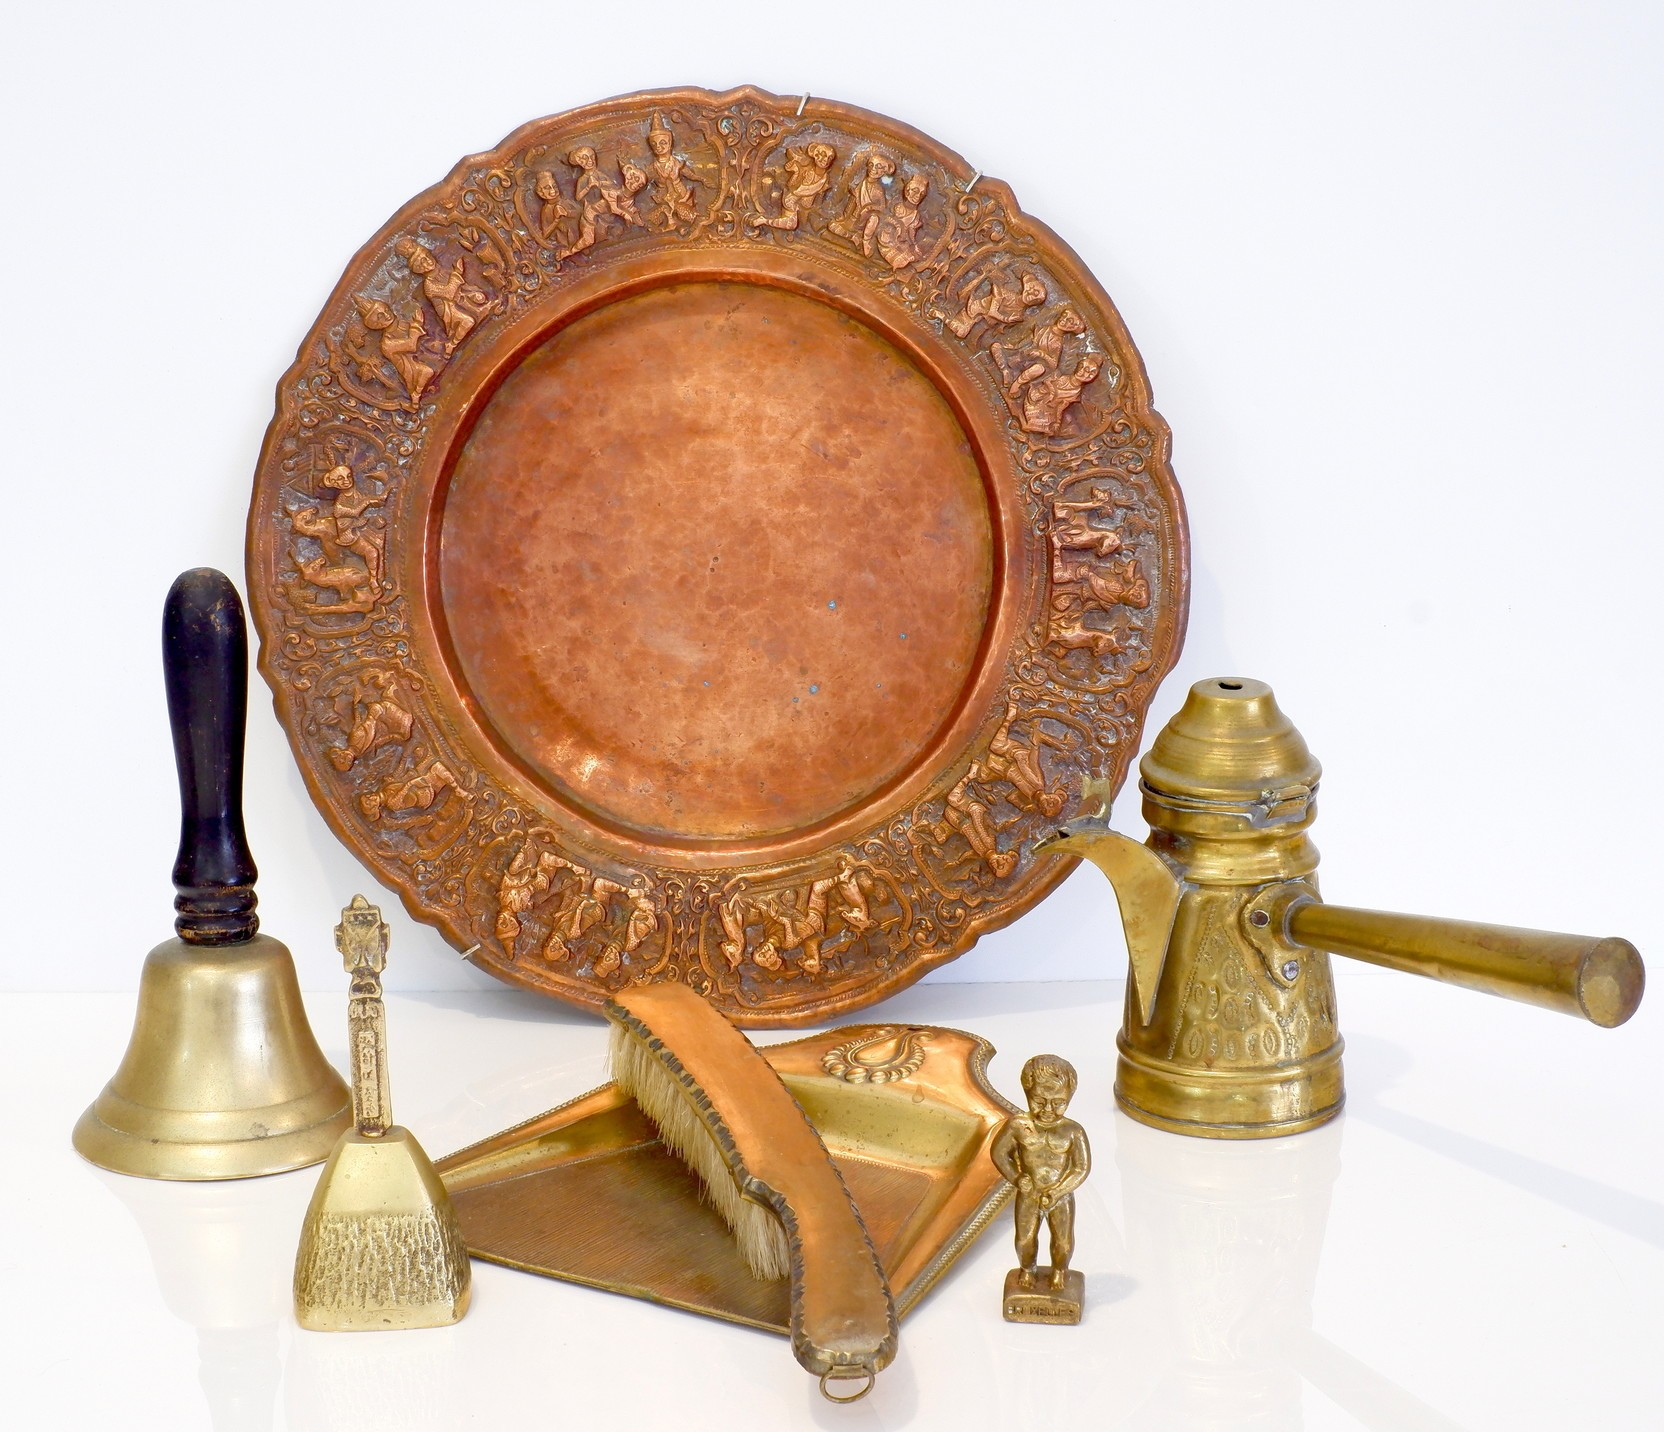 'Various Vintage Brass Items and a Burmese Repousse Copper Tray'